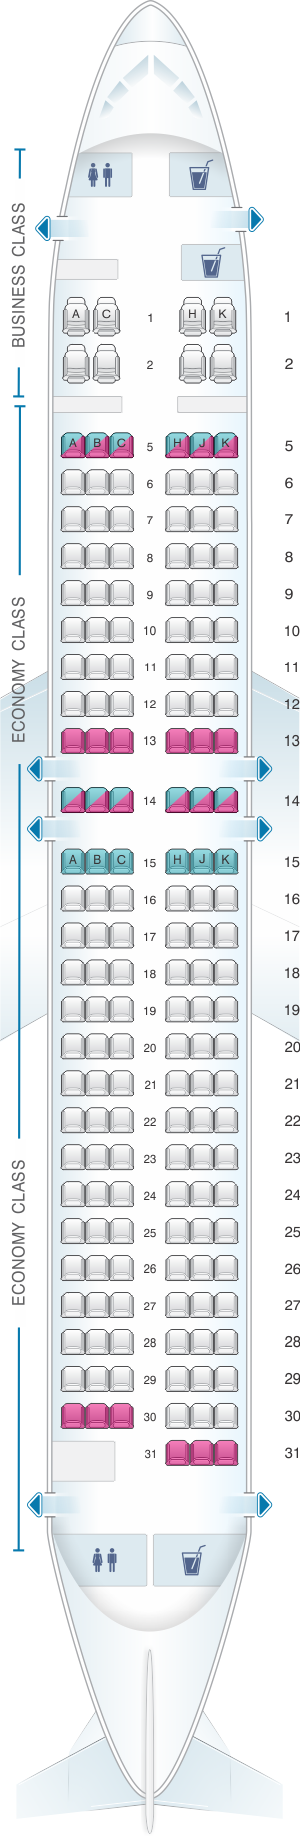 Seat map for ANA - All Nippon Airways Boeing B737 800 domestic